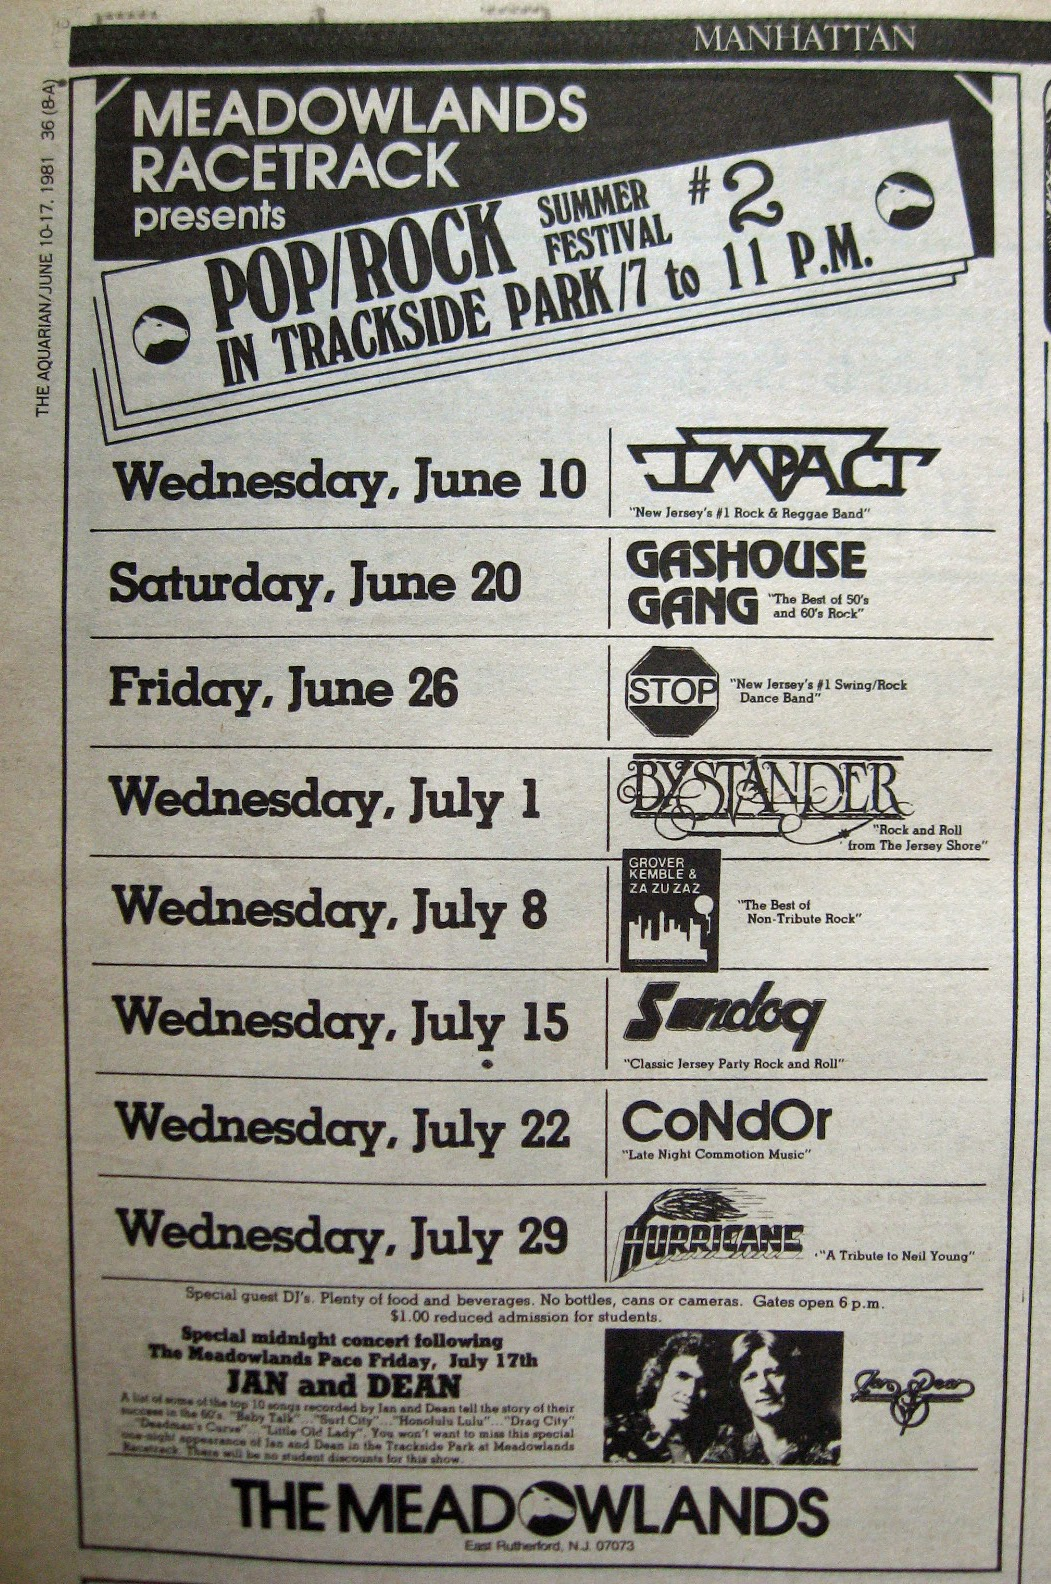 Meadowlands Racetrack band lineup June 1981